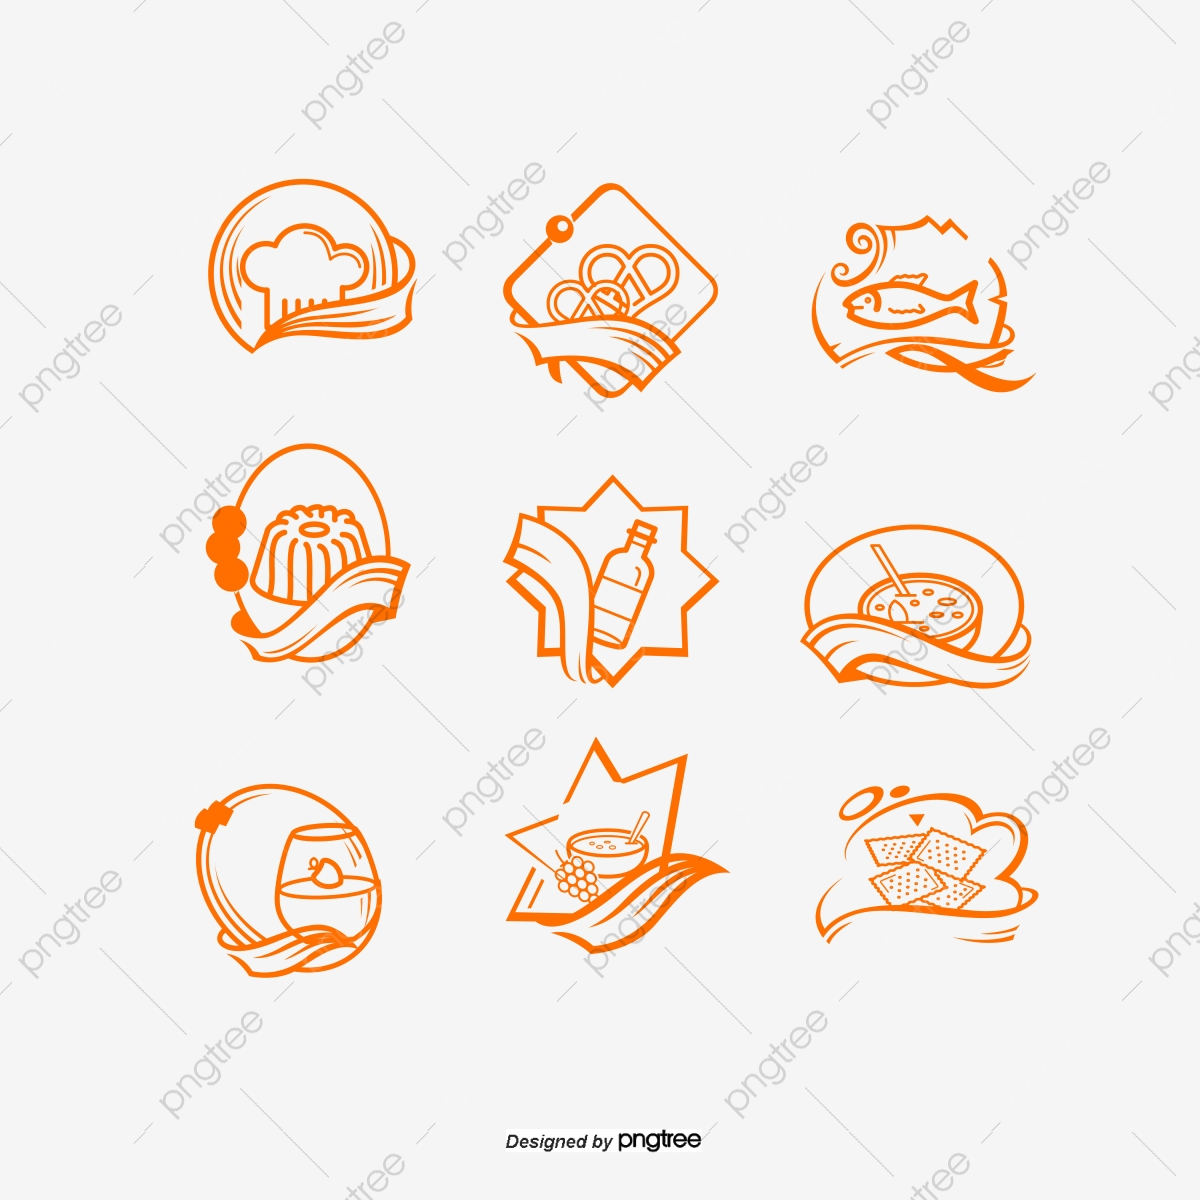 Food Icon Image, Mark, Food, Dining PNG and Vector with